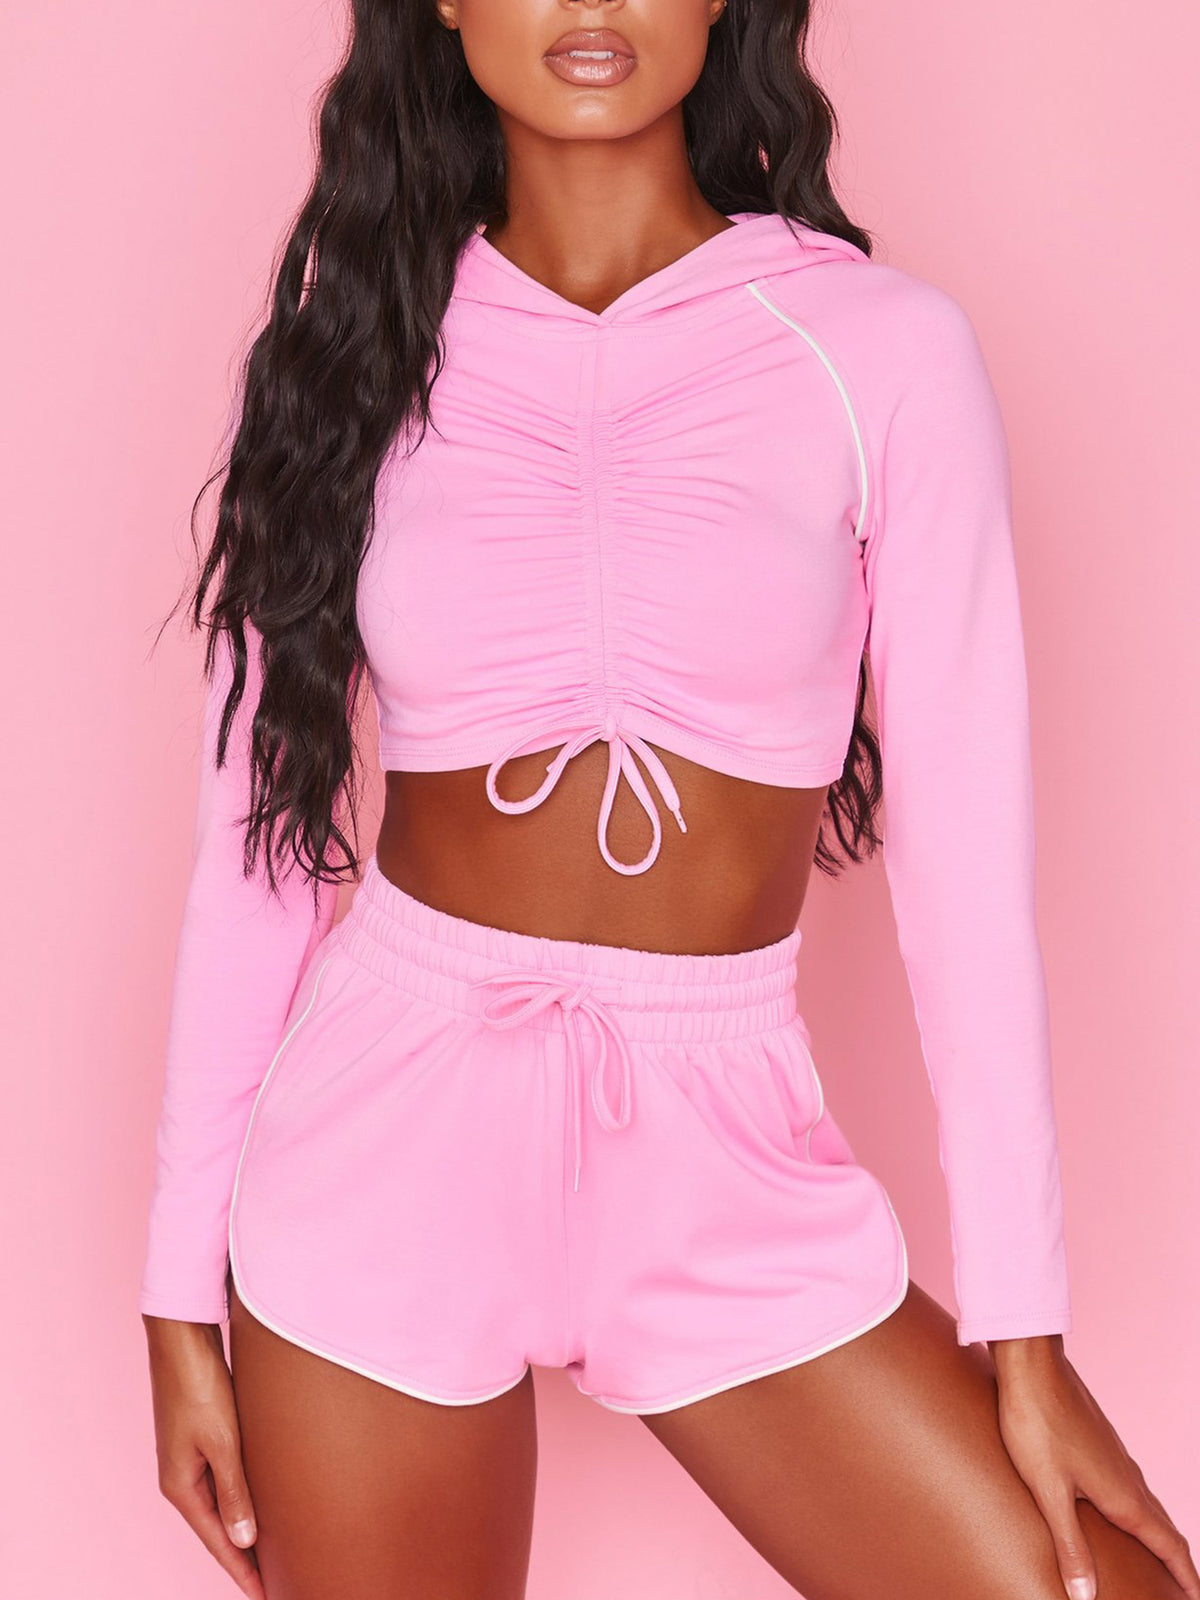 Shirring Crop Top With Hood & Yoga Shorts Fitness Suit